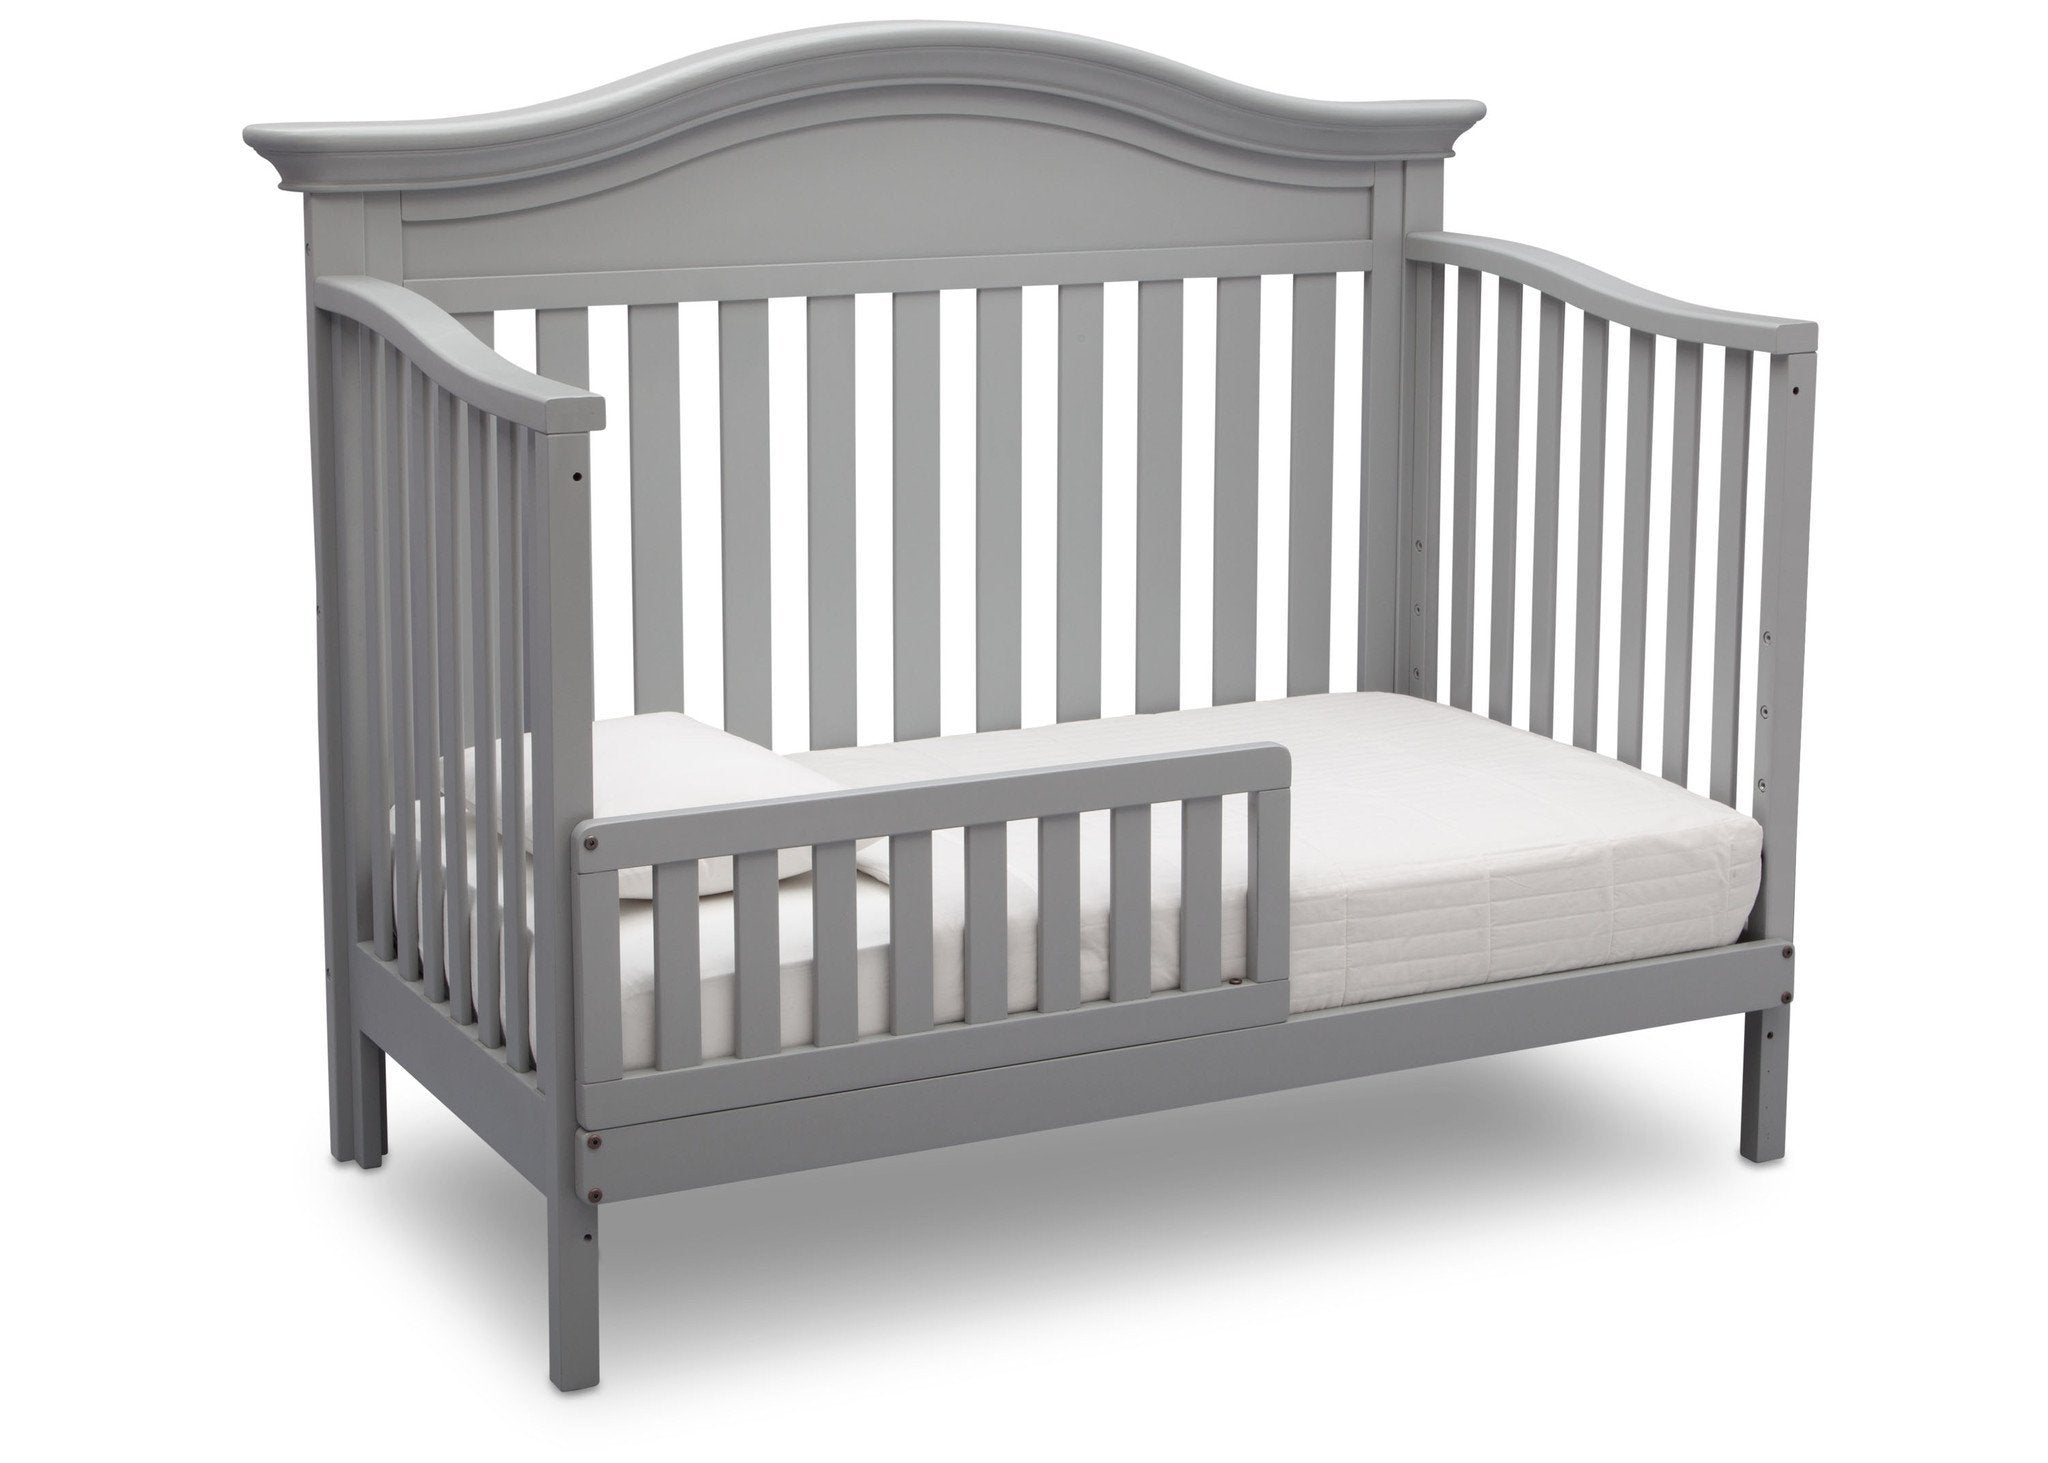 Serta Grey (026) Banbury 4-in-1 Convertible Crib, Toddler Bed View a3a